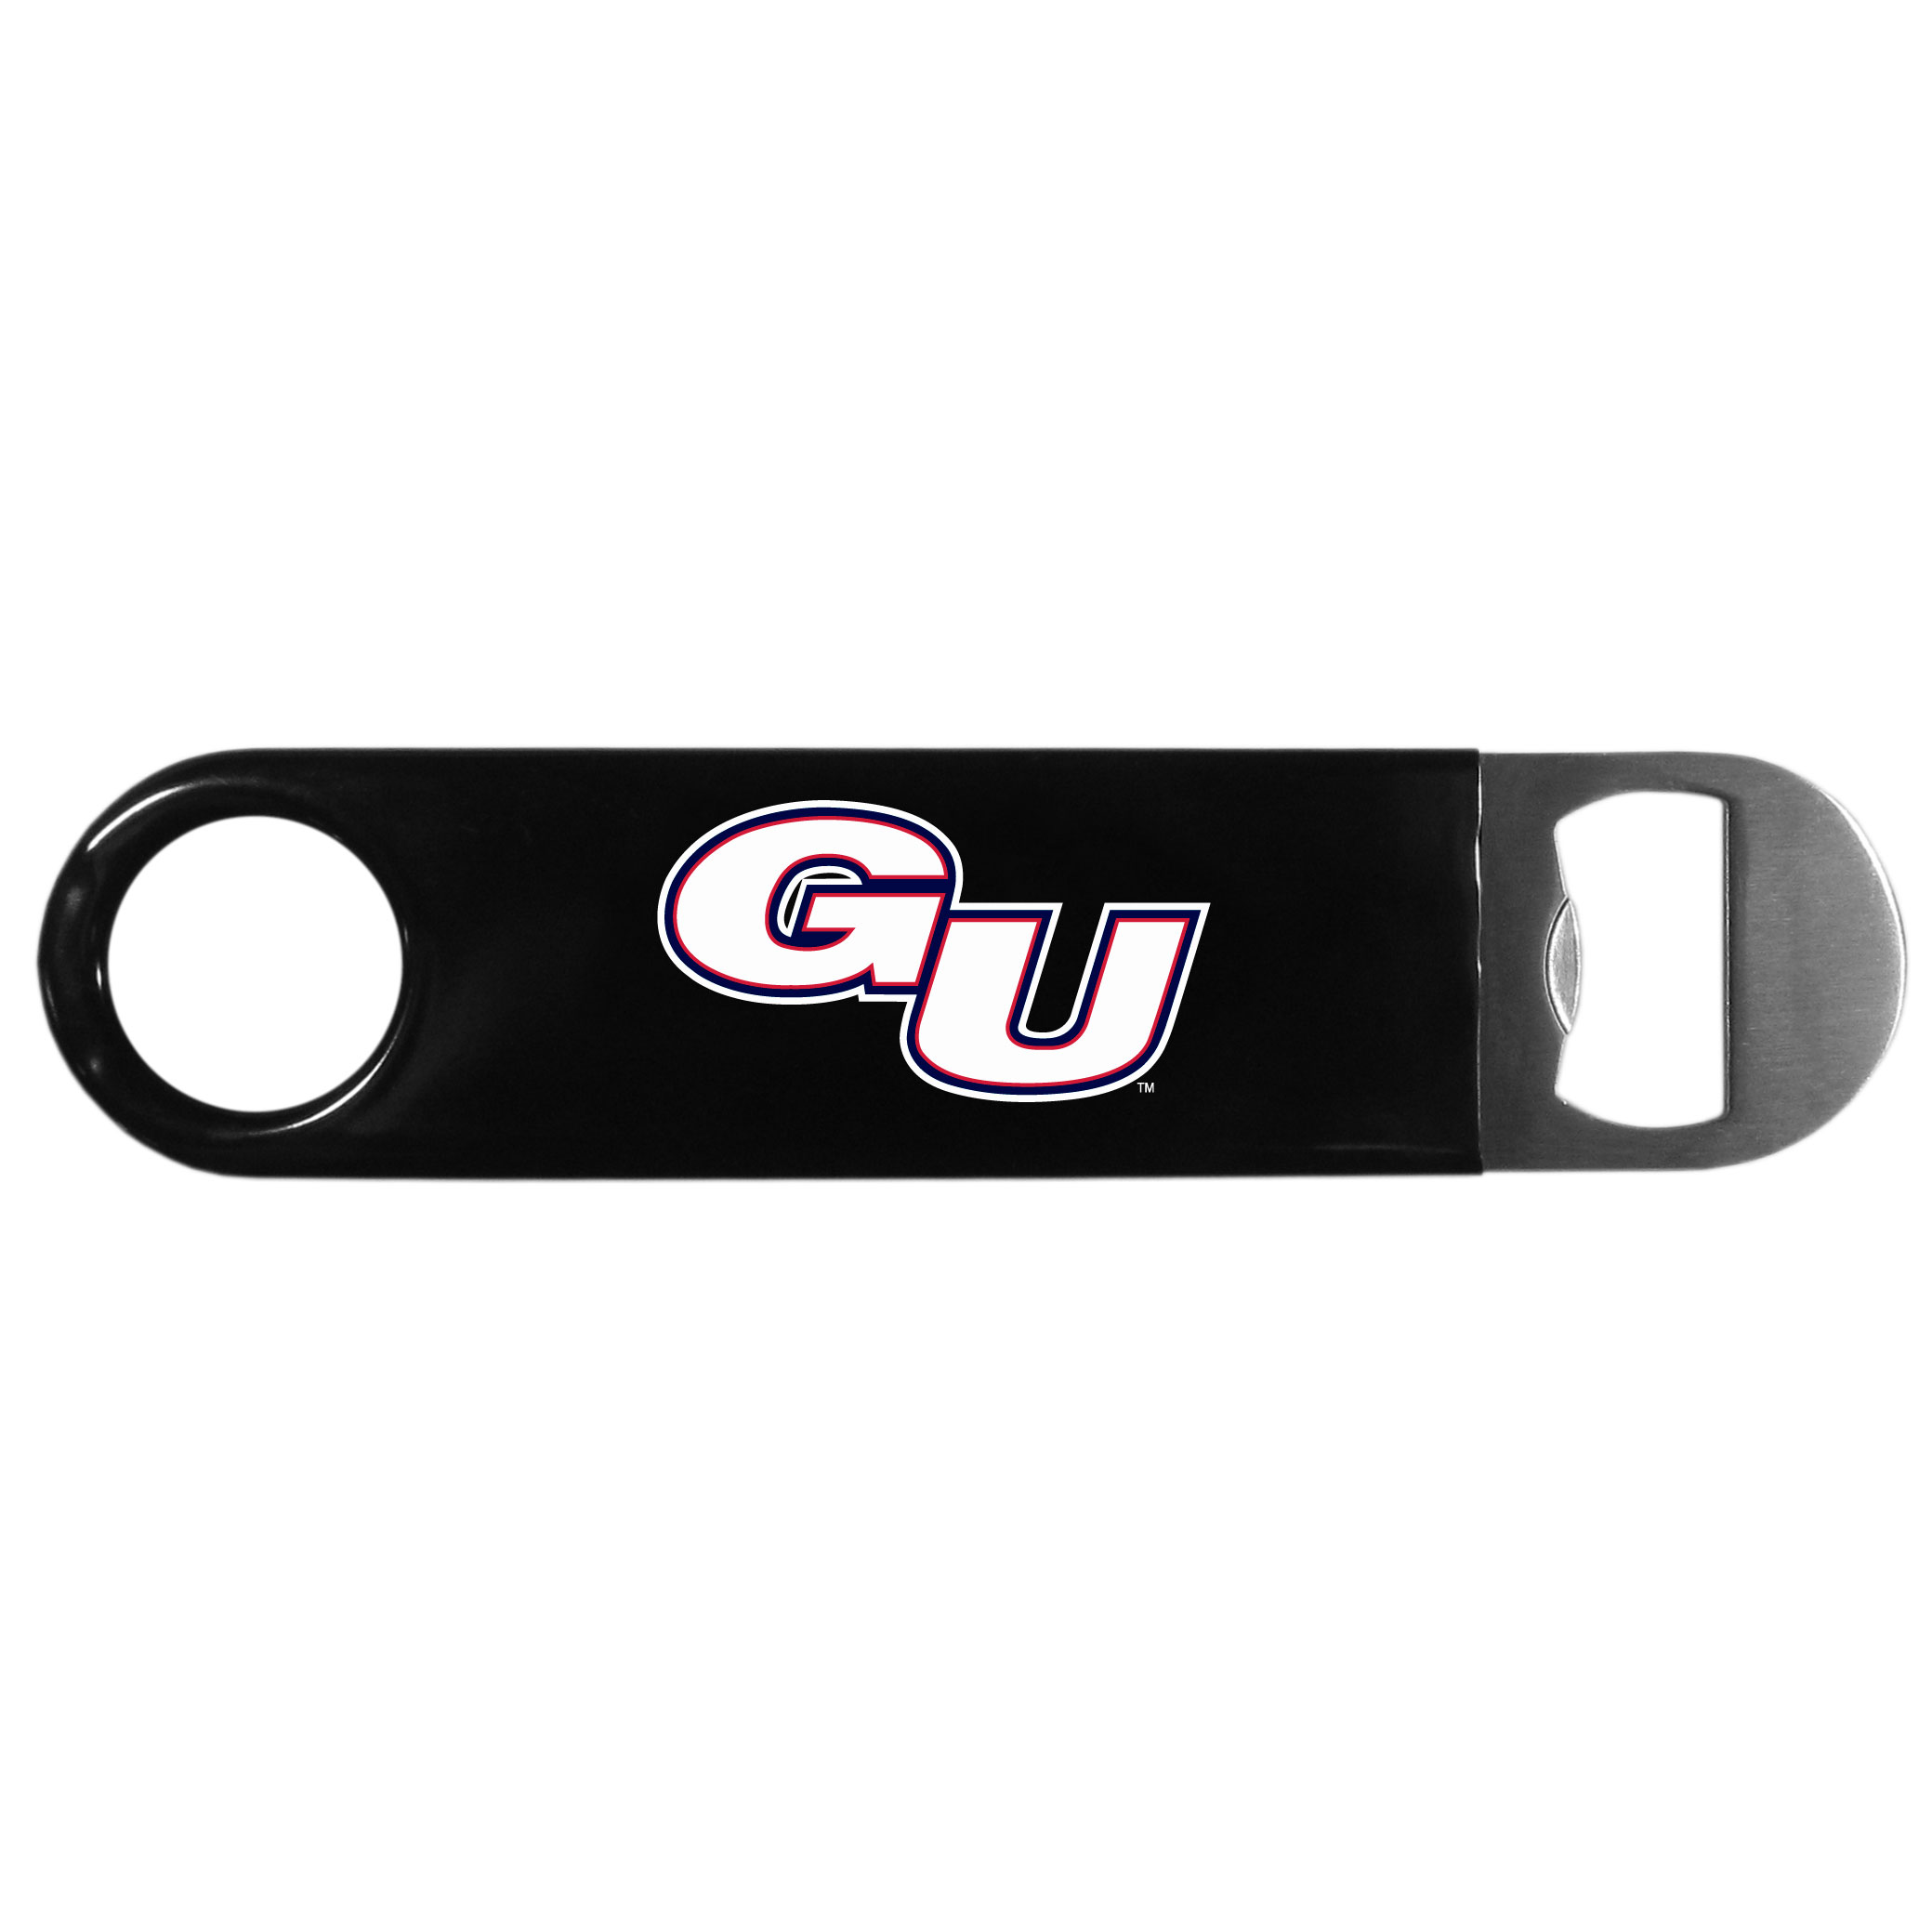 Gonzaga Bulldogs Long Neck Bottle Opener - This heavy-duty steel opener is extra long, with a durable vinyl covering. The extra length provides more leverage for speed opening and the opener features a large printed Gonzaga Bulldogs logo.